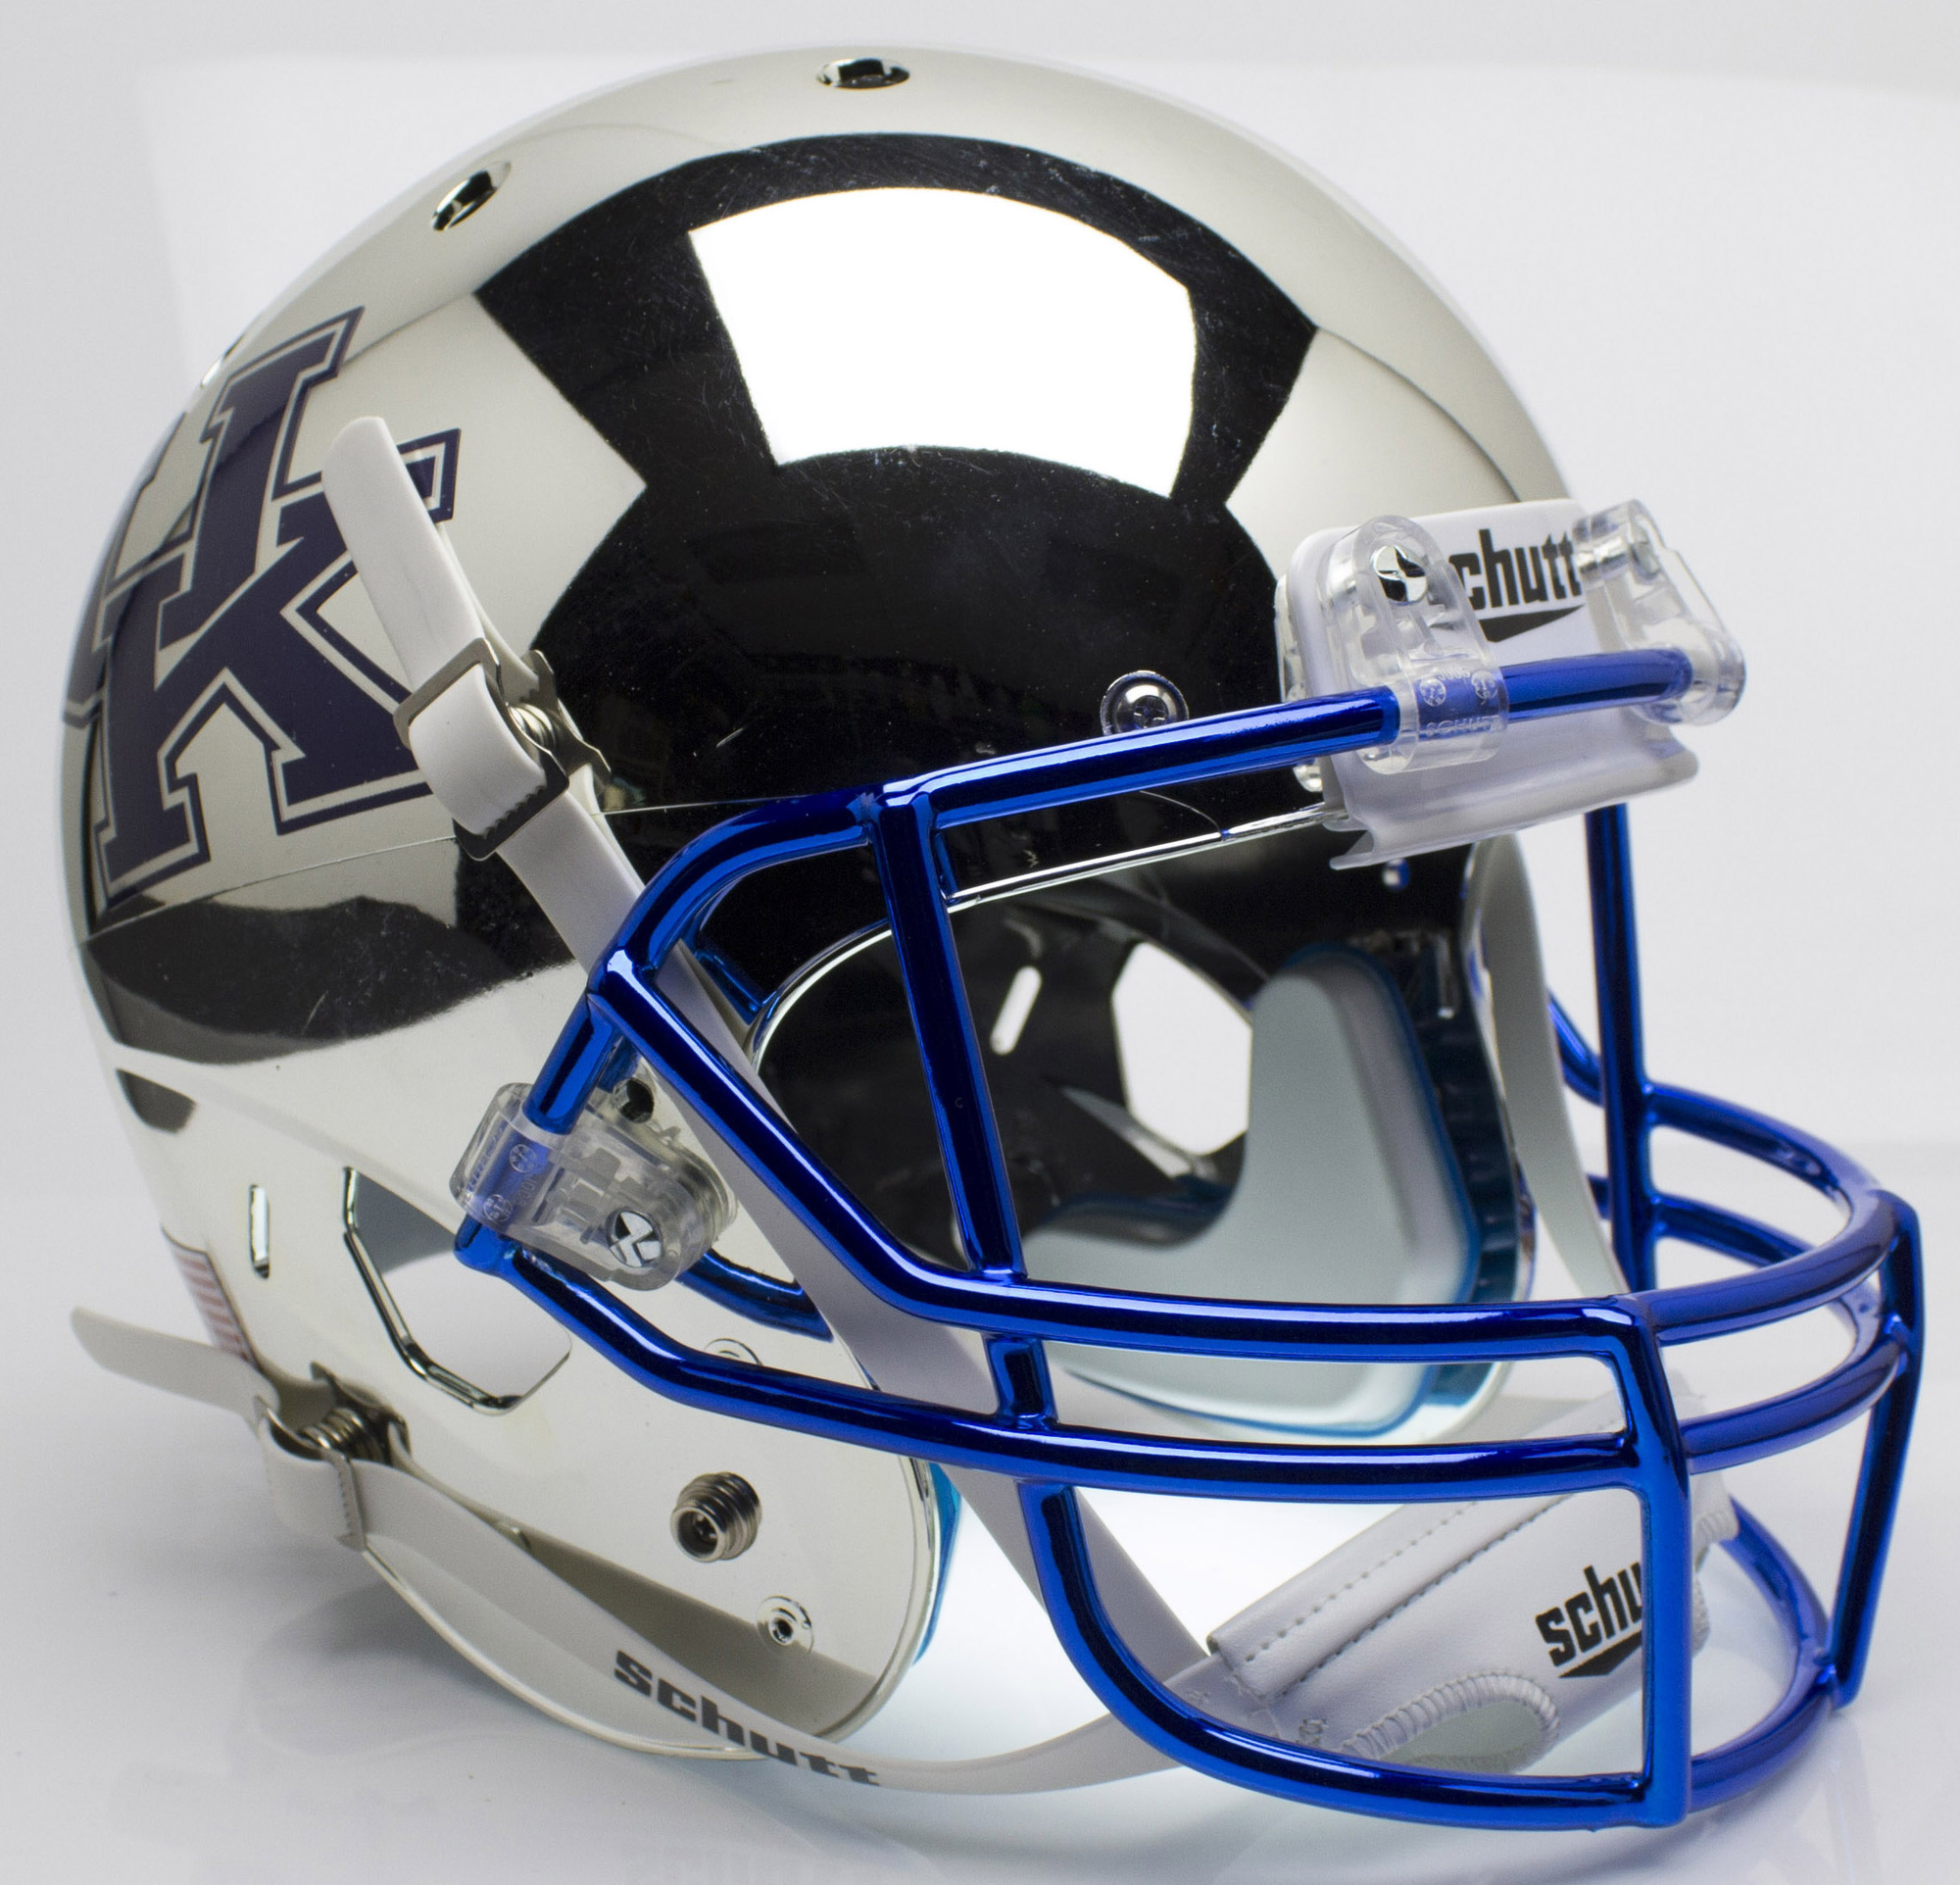 Kentucky Wildcats Full XP Replica Football Helmet Schutt B Chrome Silver B PSM-Powers Sports Memorabilia